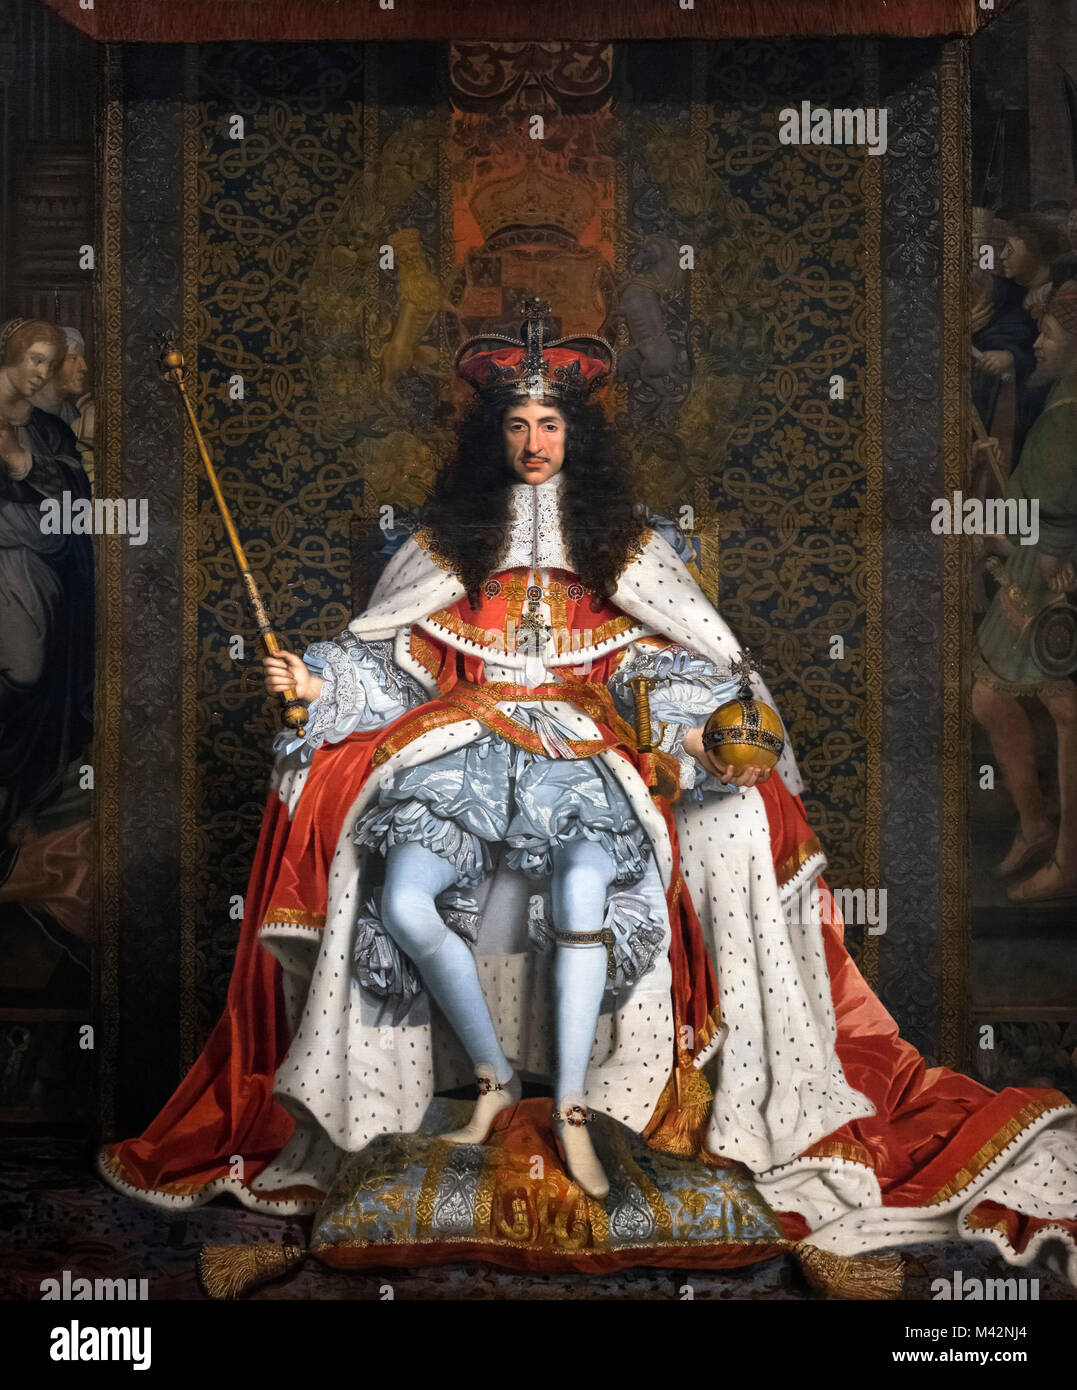 Charles II. Portrait of King Charles II by John Michael Wright, oil on canvas, c.1671-76 - Stock Image